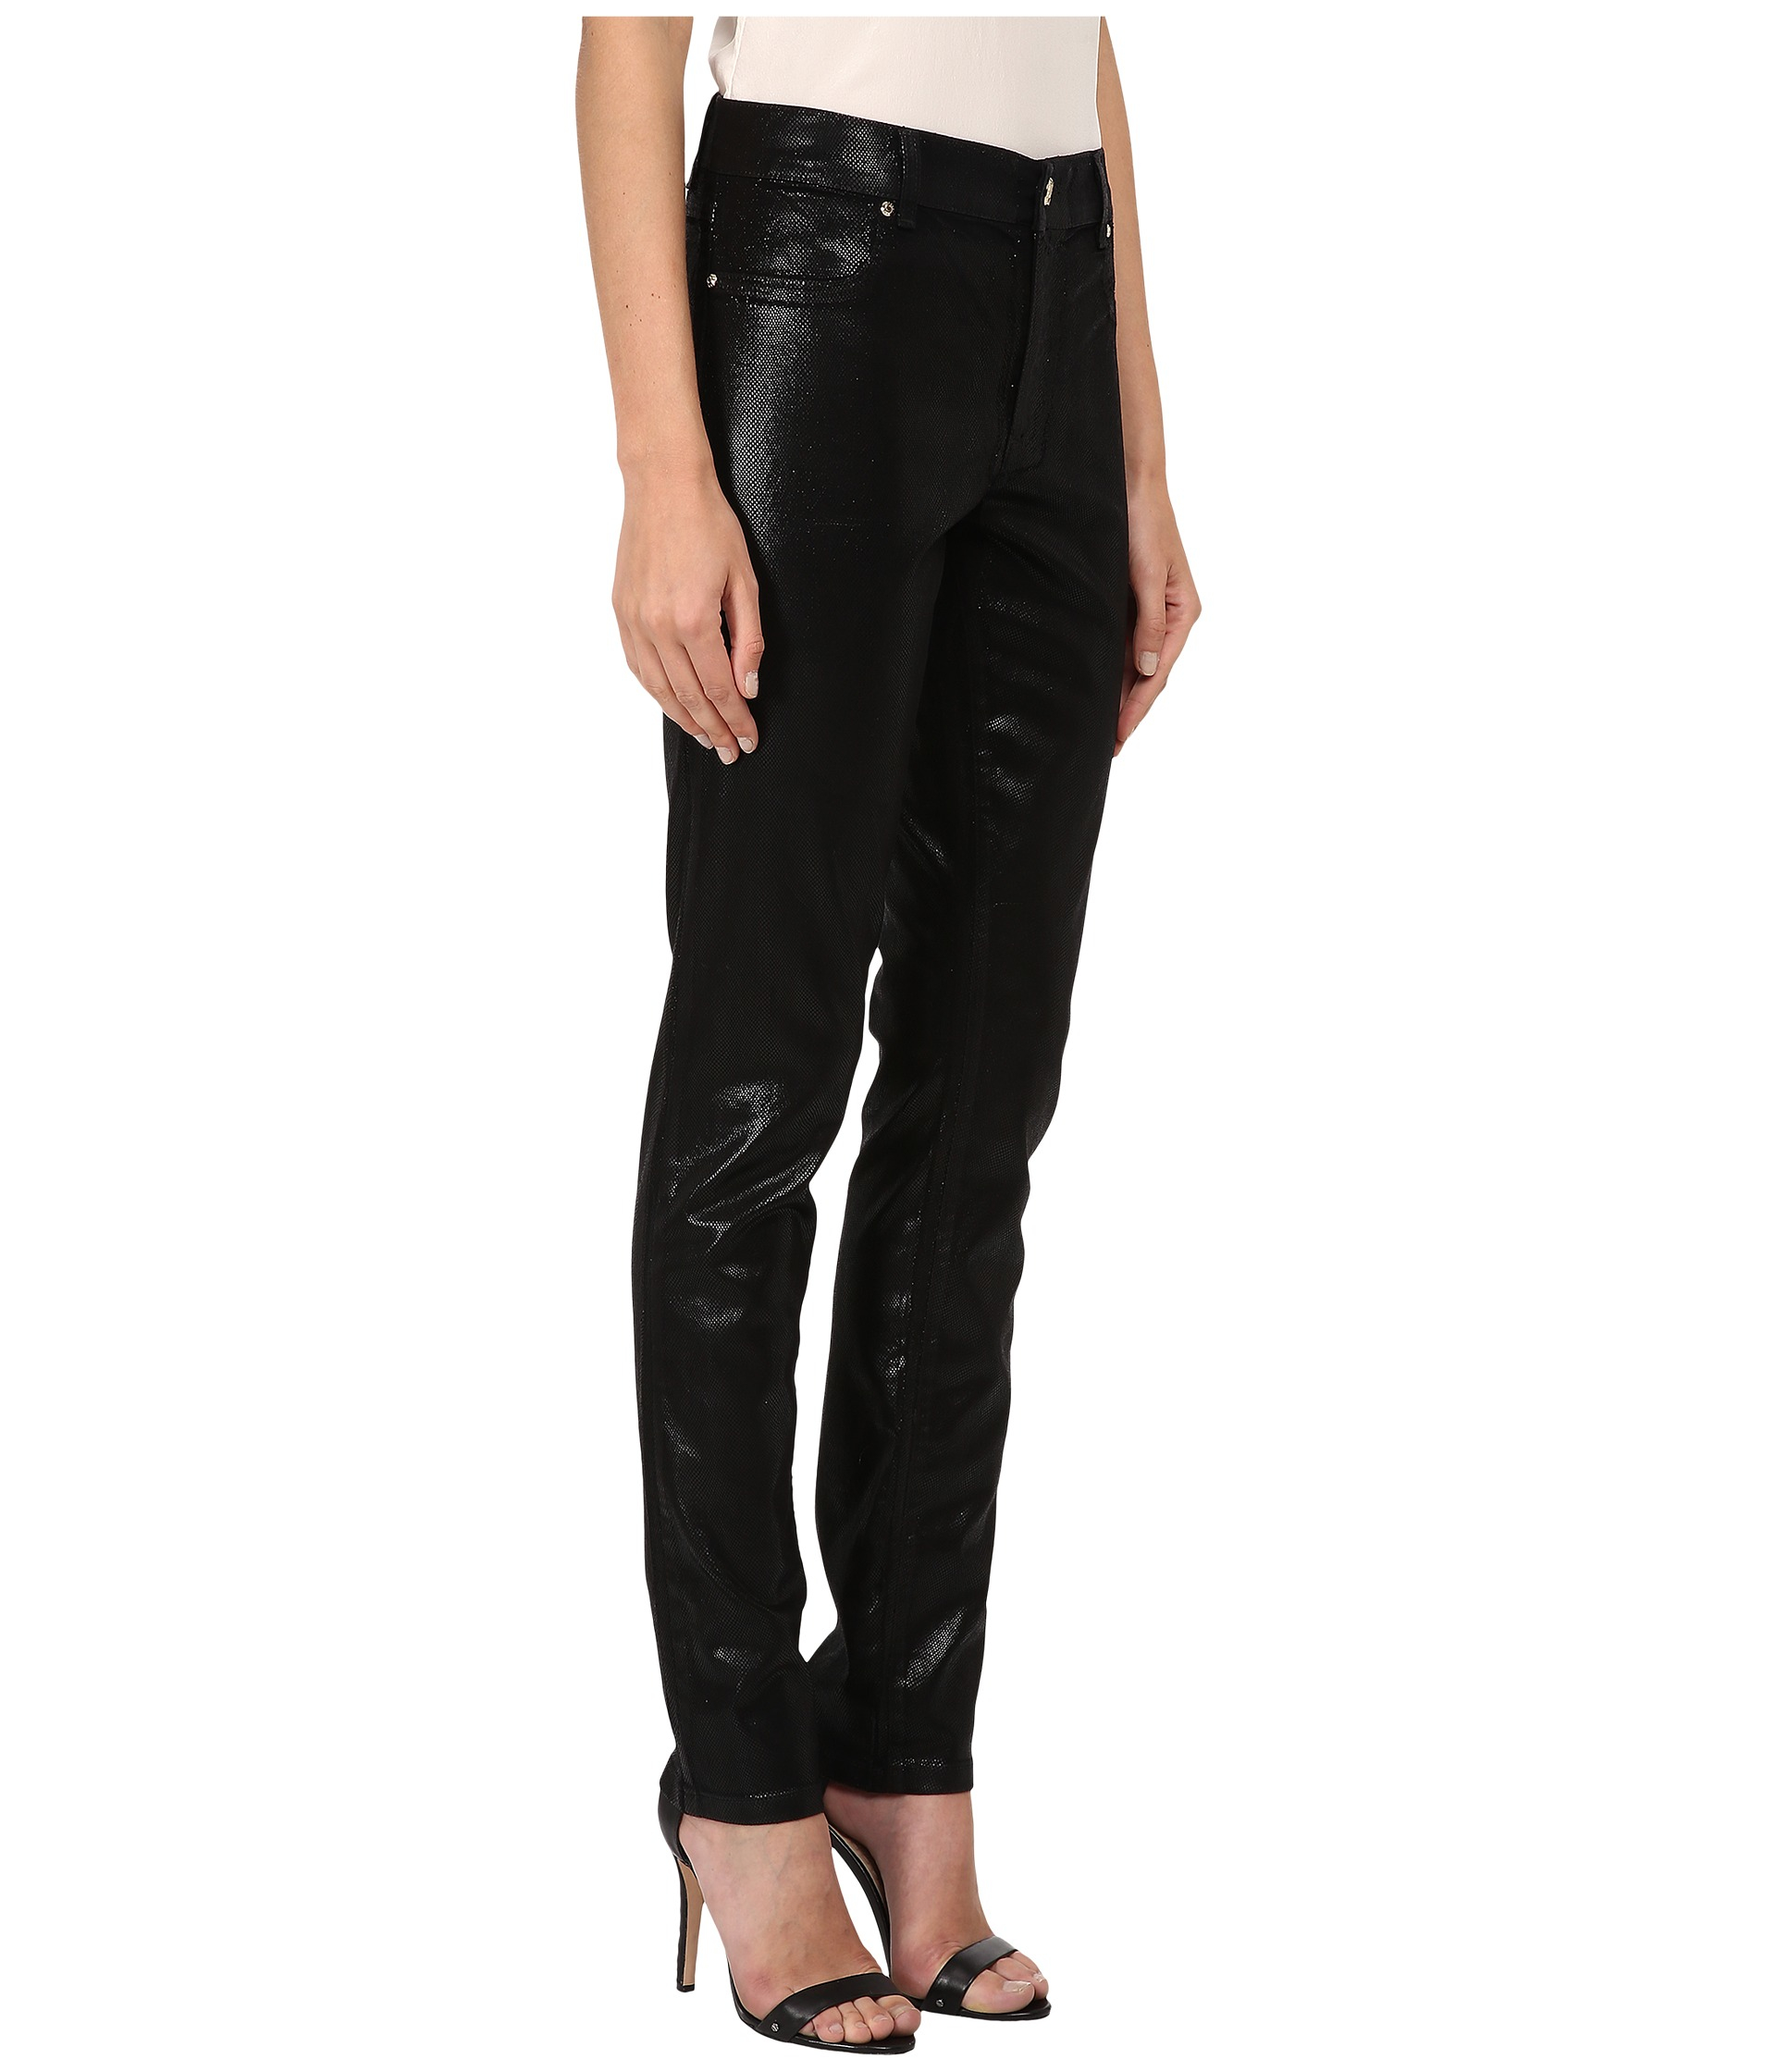 Shop for women's skinny jeans at ASOS. Ultra skinny jeans are a great style option. Browse our skin tight jeans in every wash from light to dark to black.